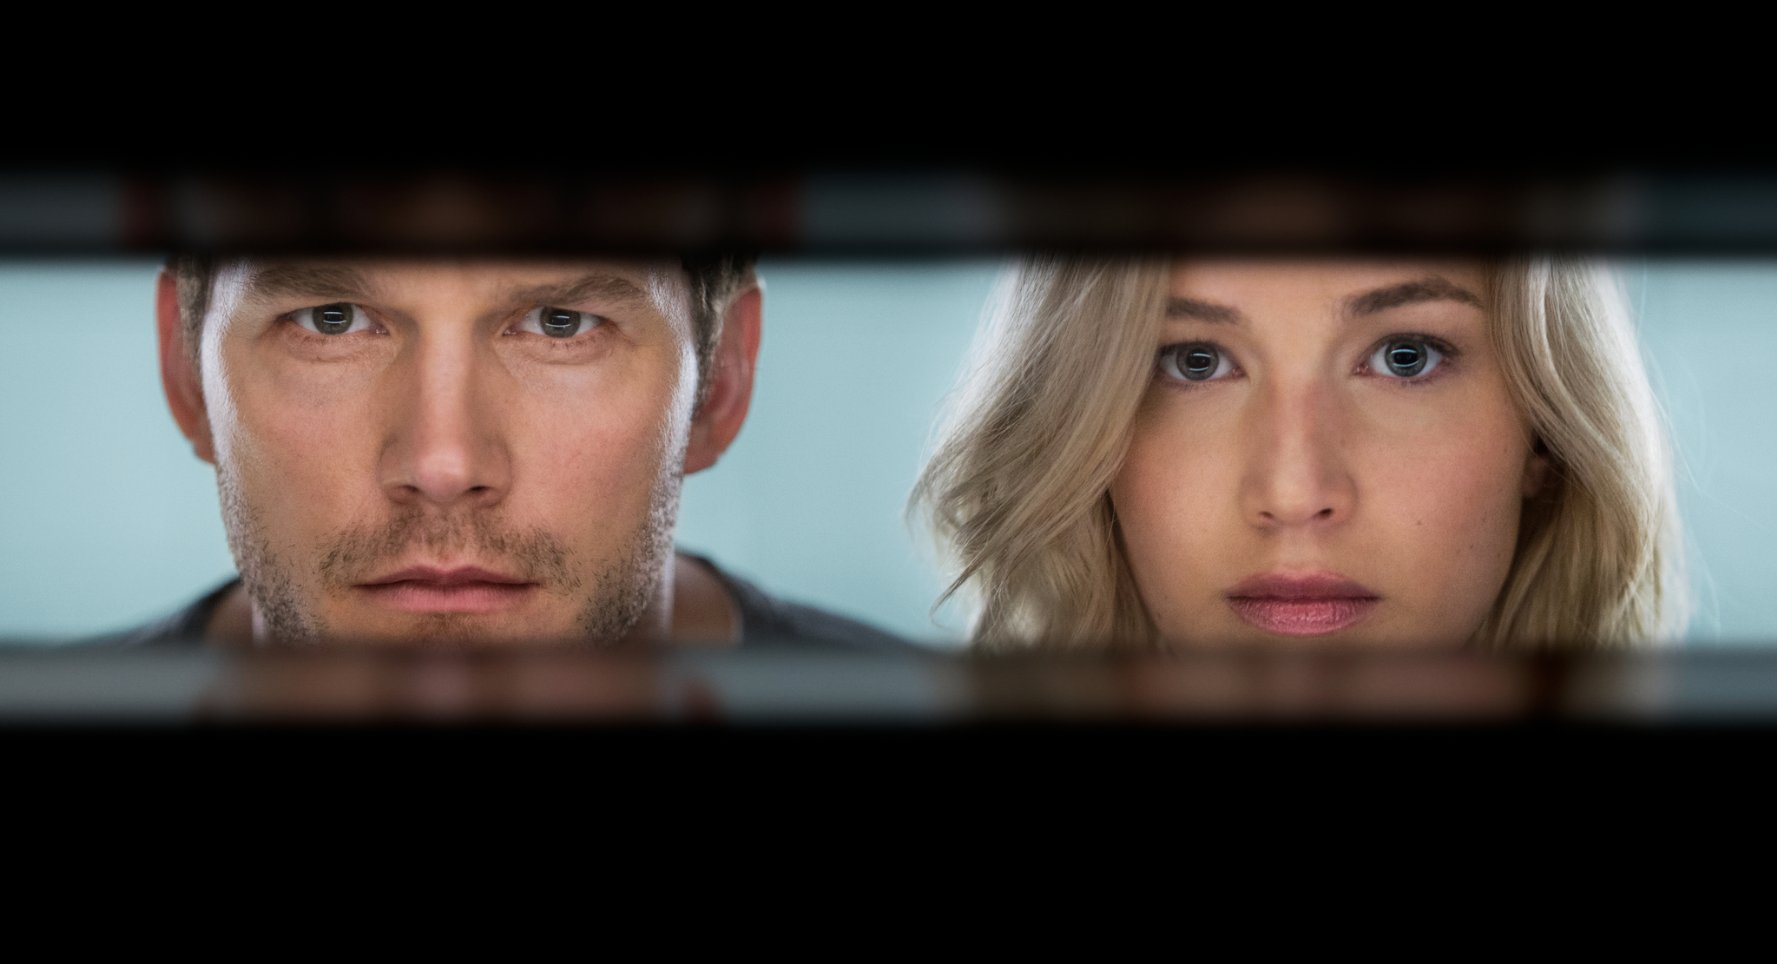 'Passengers' is one of 2016's most frustrating films